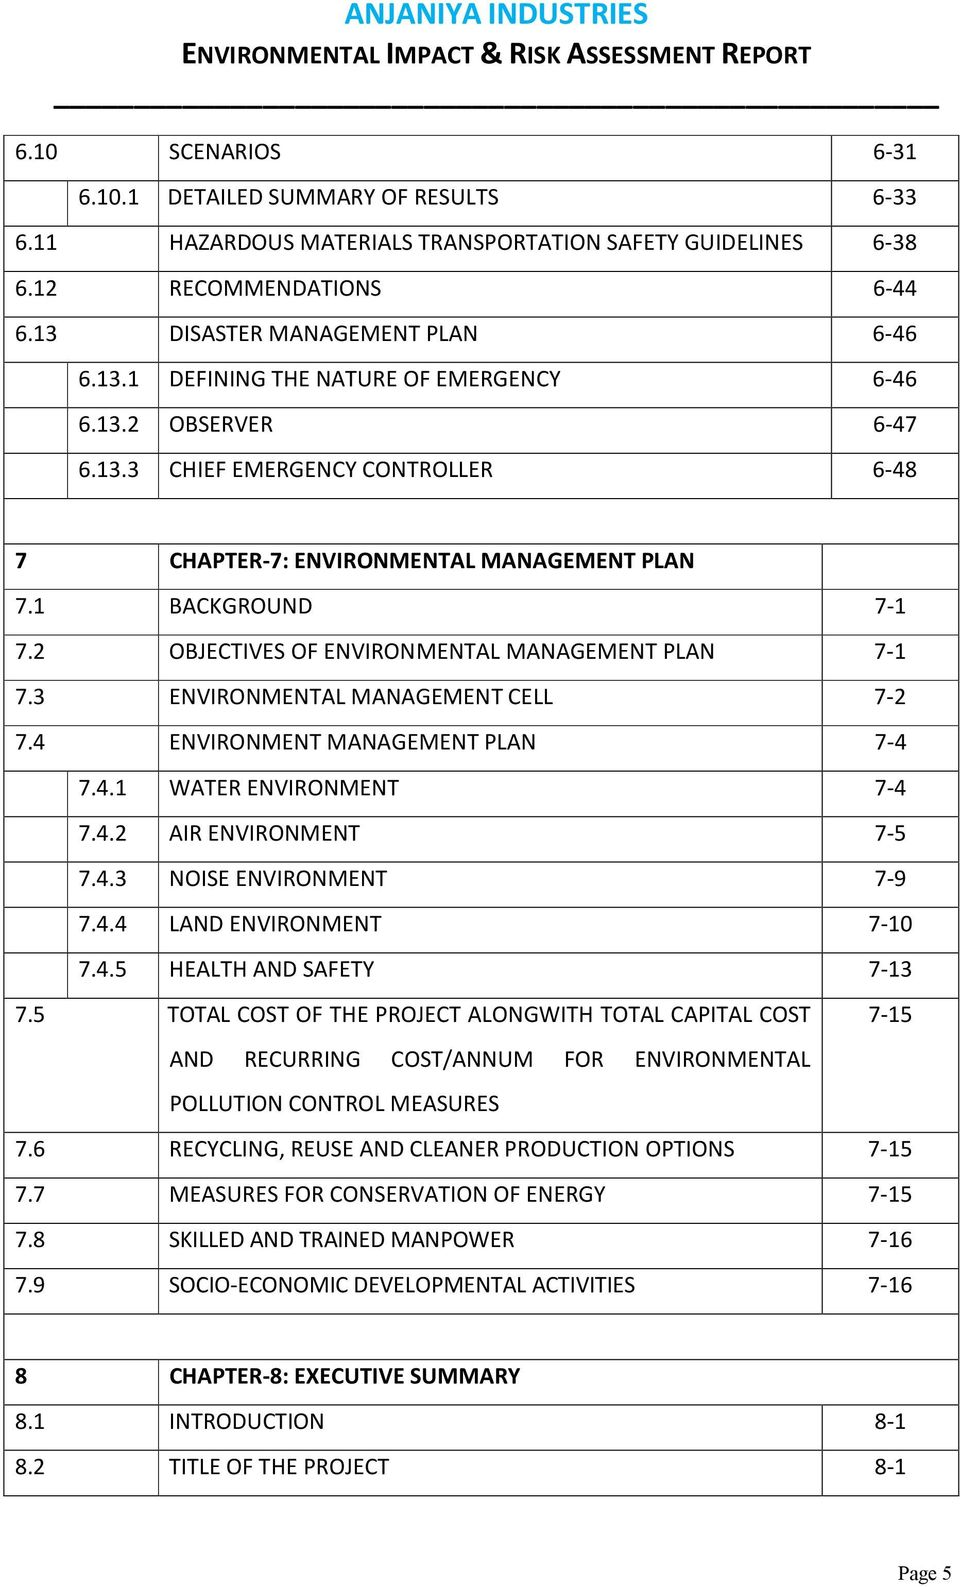 1 BACKGROUND 7-1 7.2 OBJECTIVES OF ENVIRONMENTAL MANAGEMENT PLAN 7-1 7.3 ENVIRONMENTAL MANAGEMENT CELL 7-2 7.4 ENVIRONMENT MANAGEMENT PLAN 7-4 7.4.1 WATER ENVIRONMENT 7-4 7.4.2 AIR ENVIRONMENT 7-5 7.